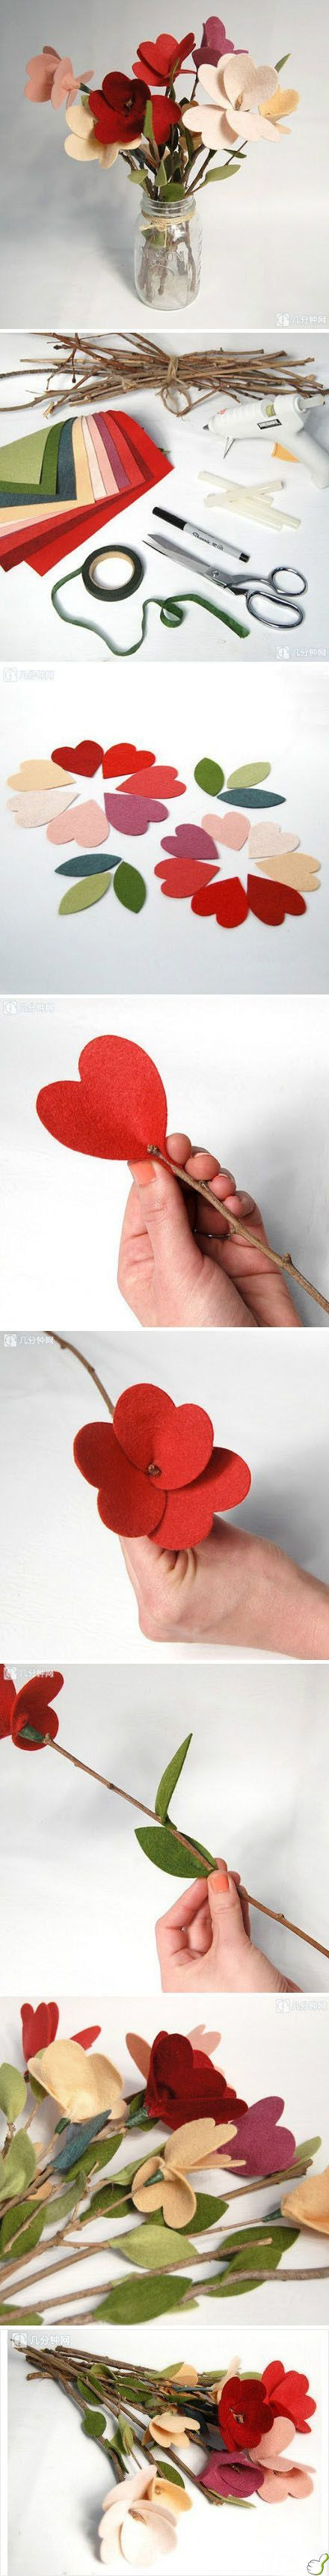 Tutorial for heart shaped felt flowers.